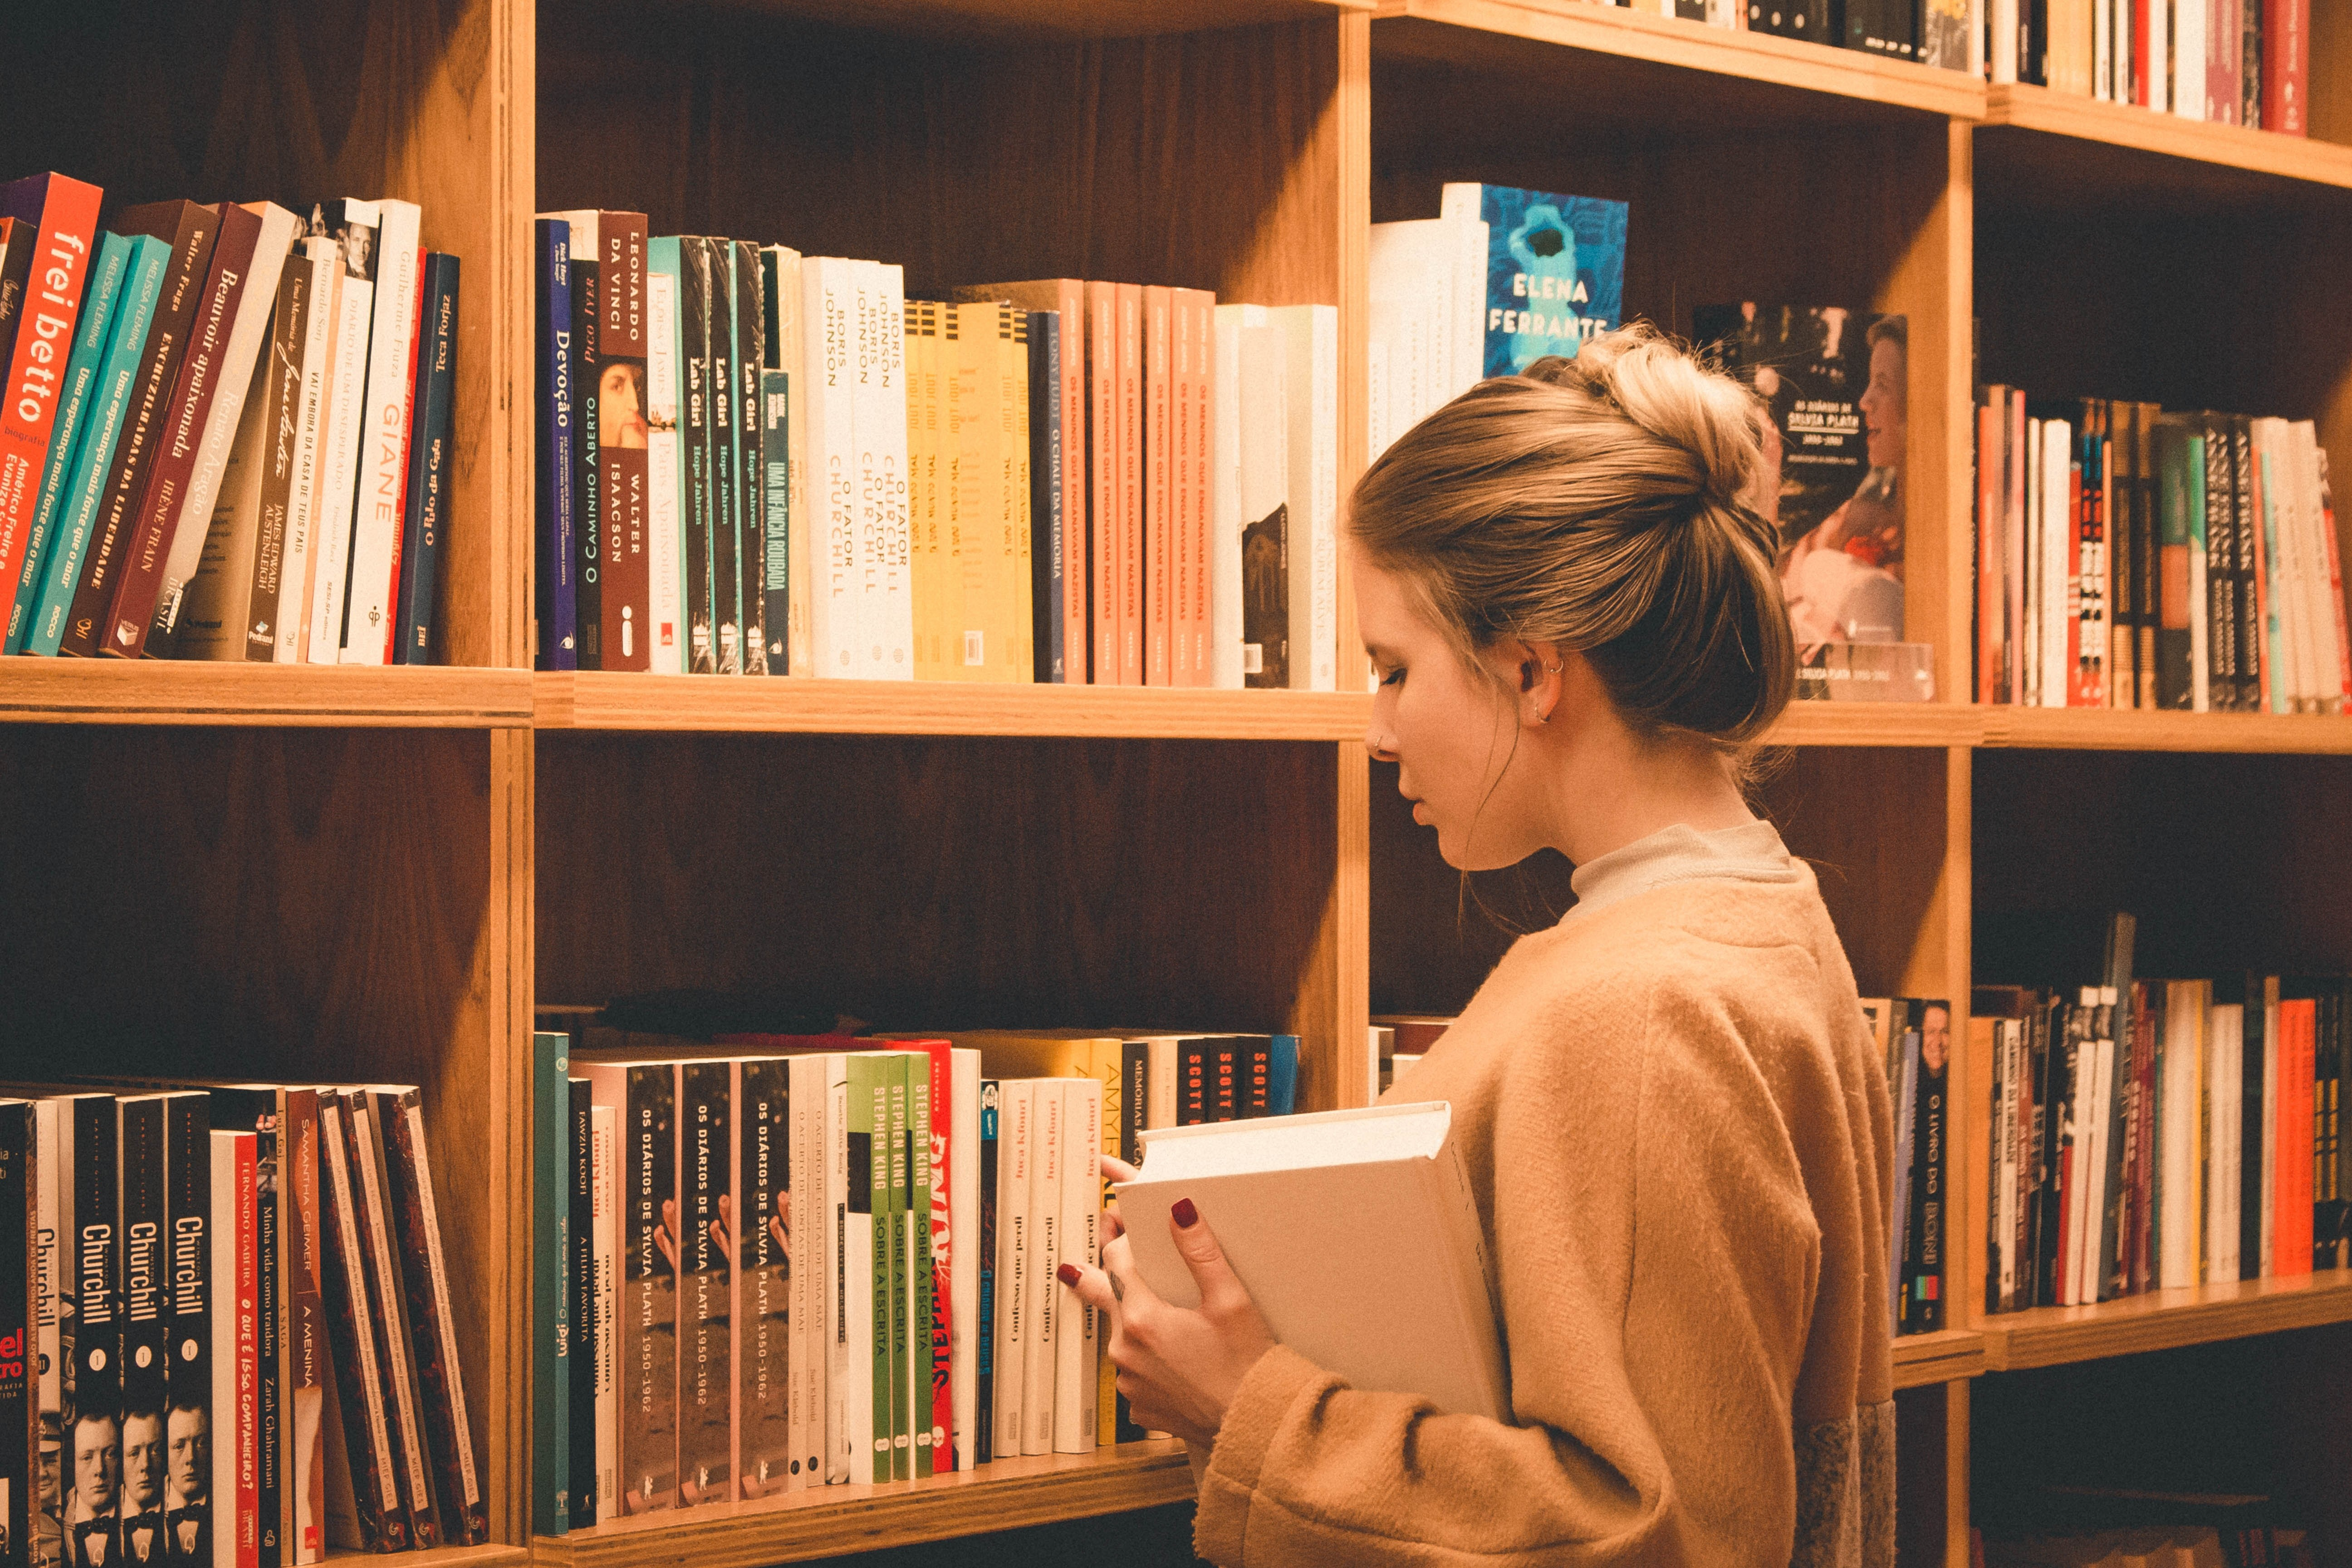 Woman searching the stacks in a library